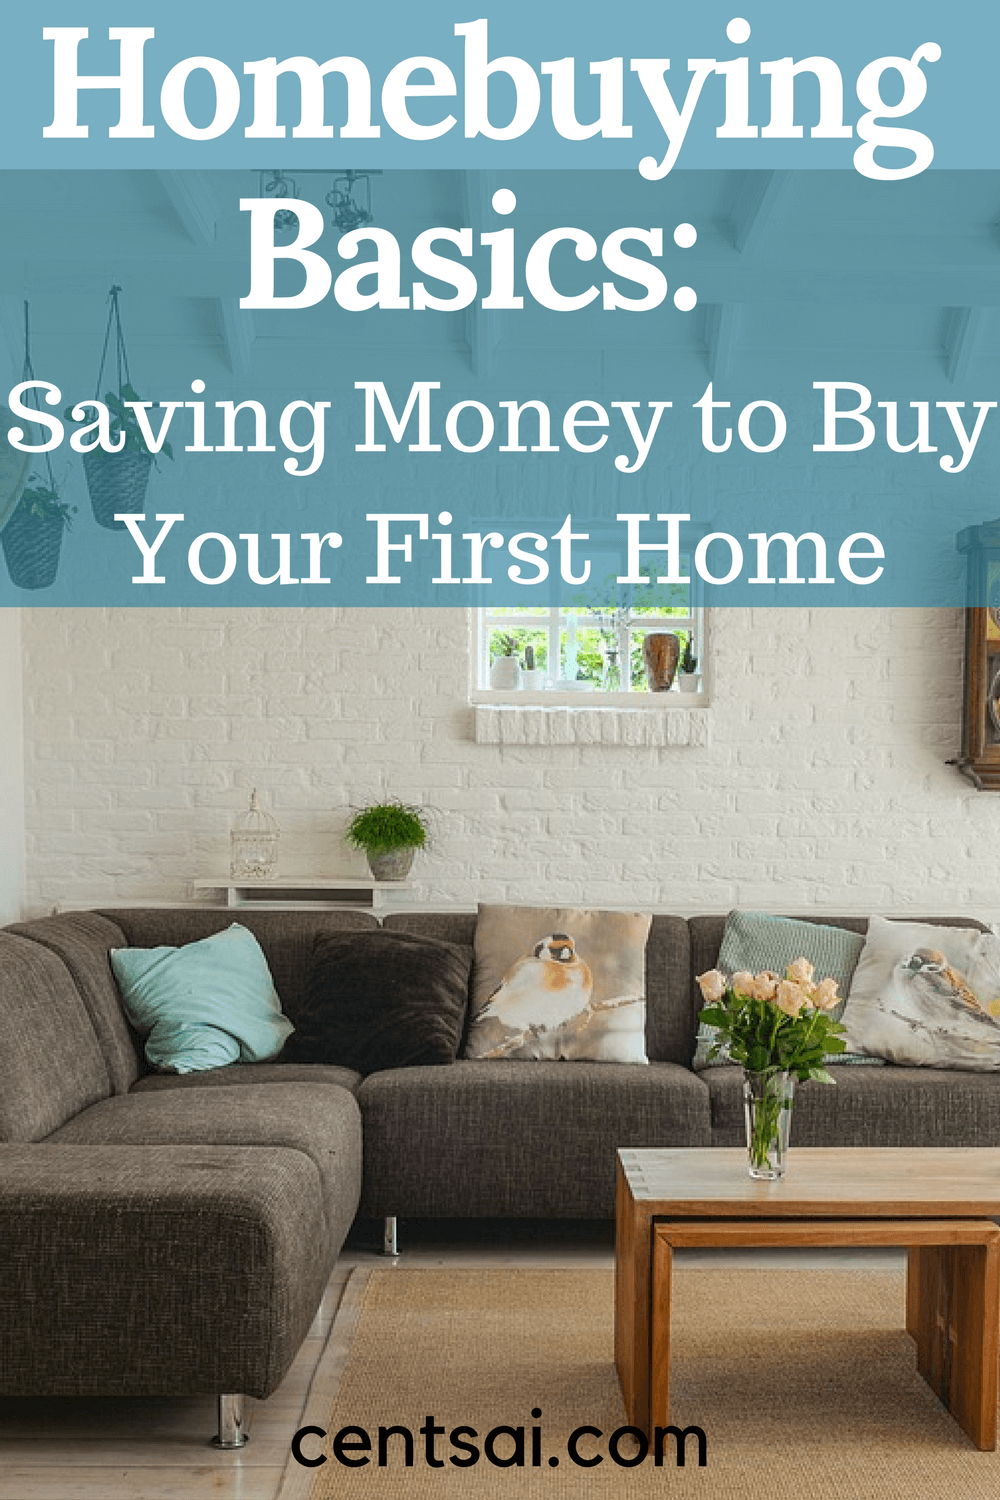 Homebuying Basics Saving Money to Buy Your First Home